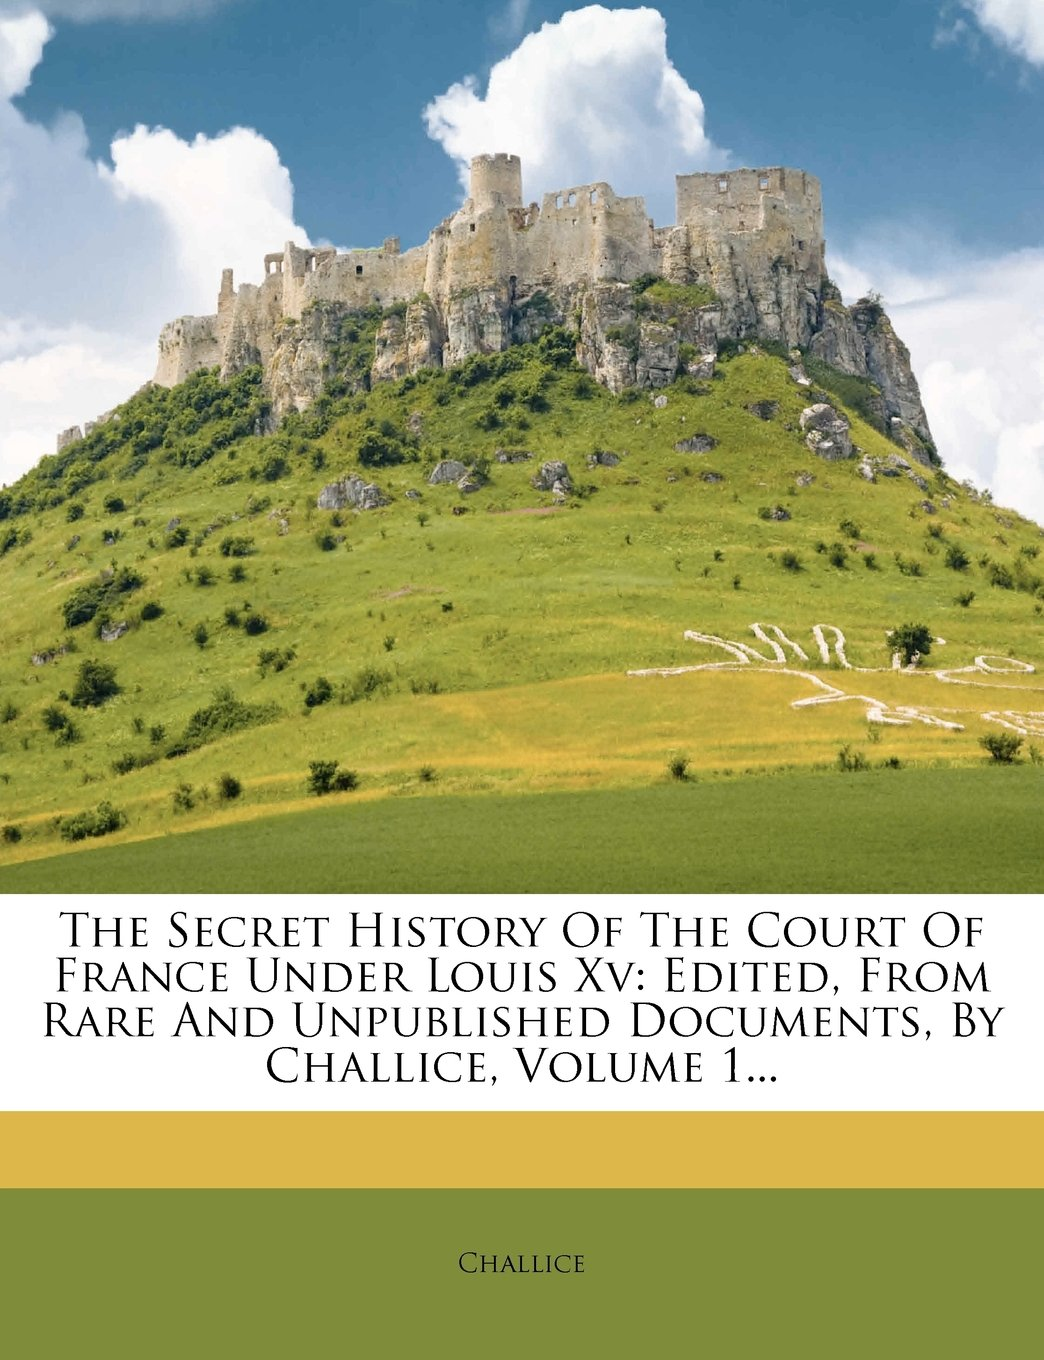 Download The Secret History Of The Court Of France Under Louis Xv: Edited, From Rare And Unpublished Documents, By Challice, Volume 1... PDF